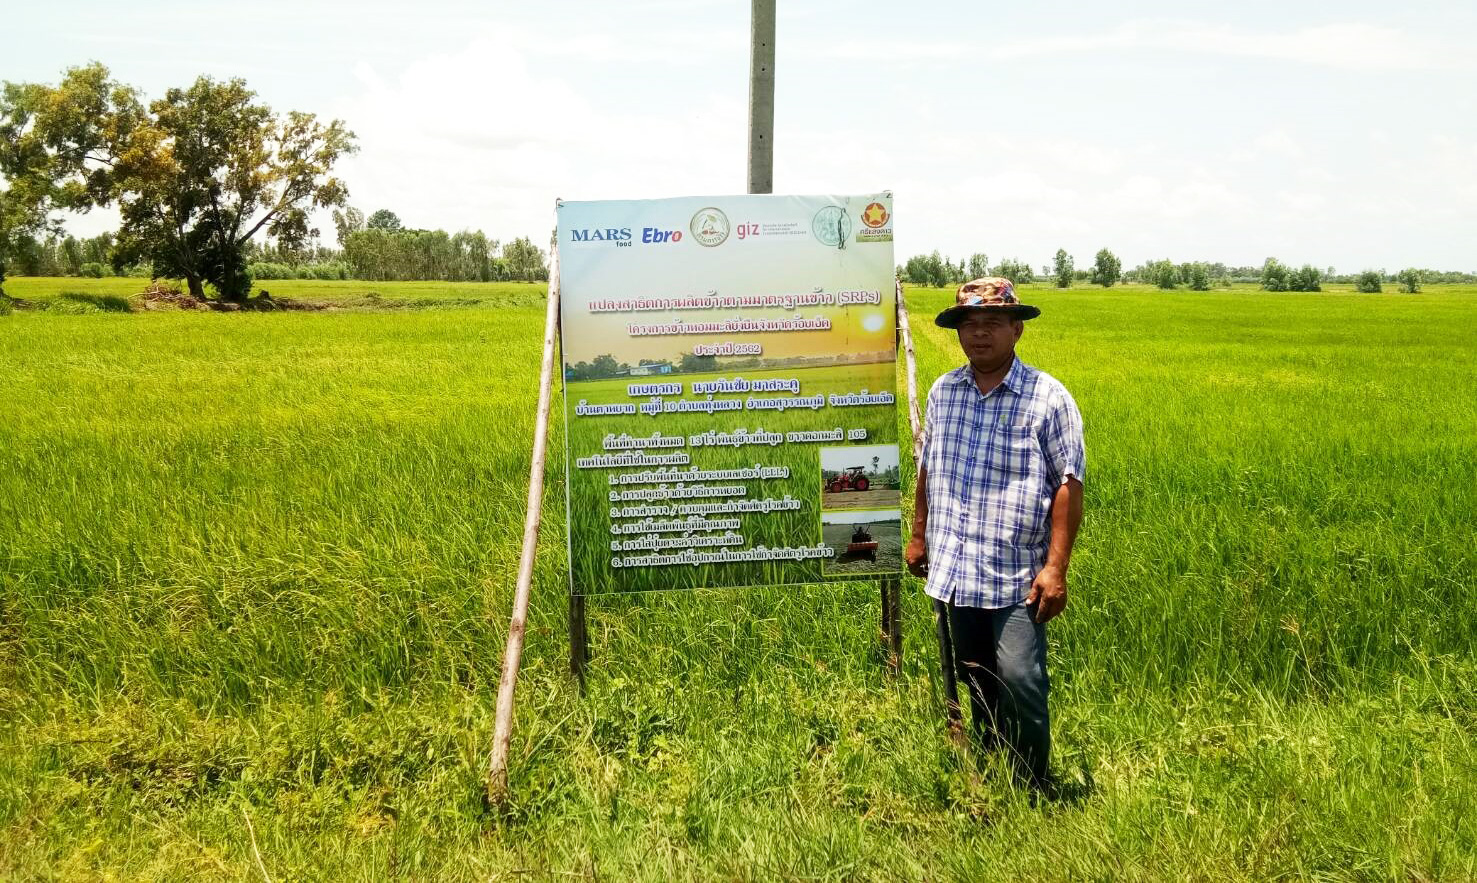 Wanchai Masrakhu, 54, never gives up, continuing to adapt to new technologies to improve his rice production.